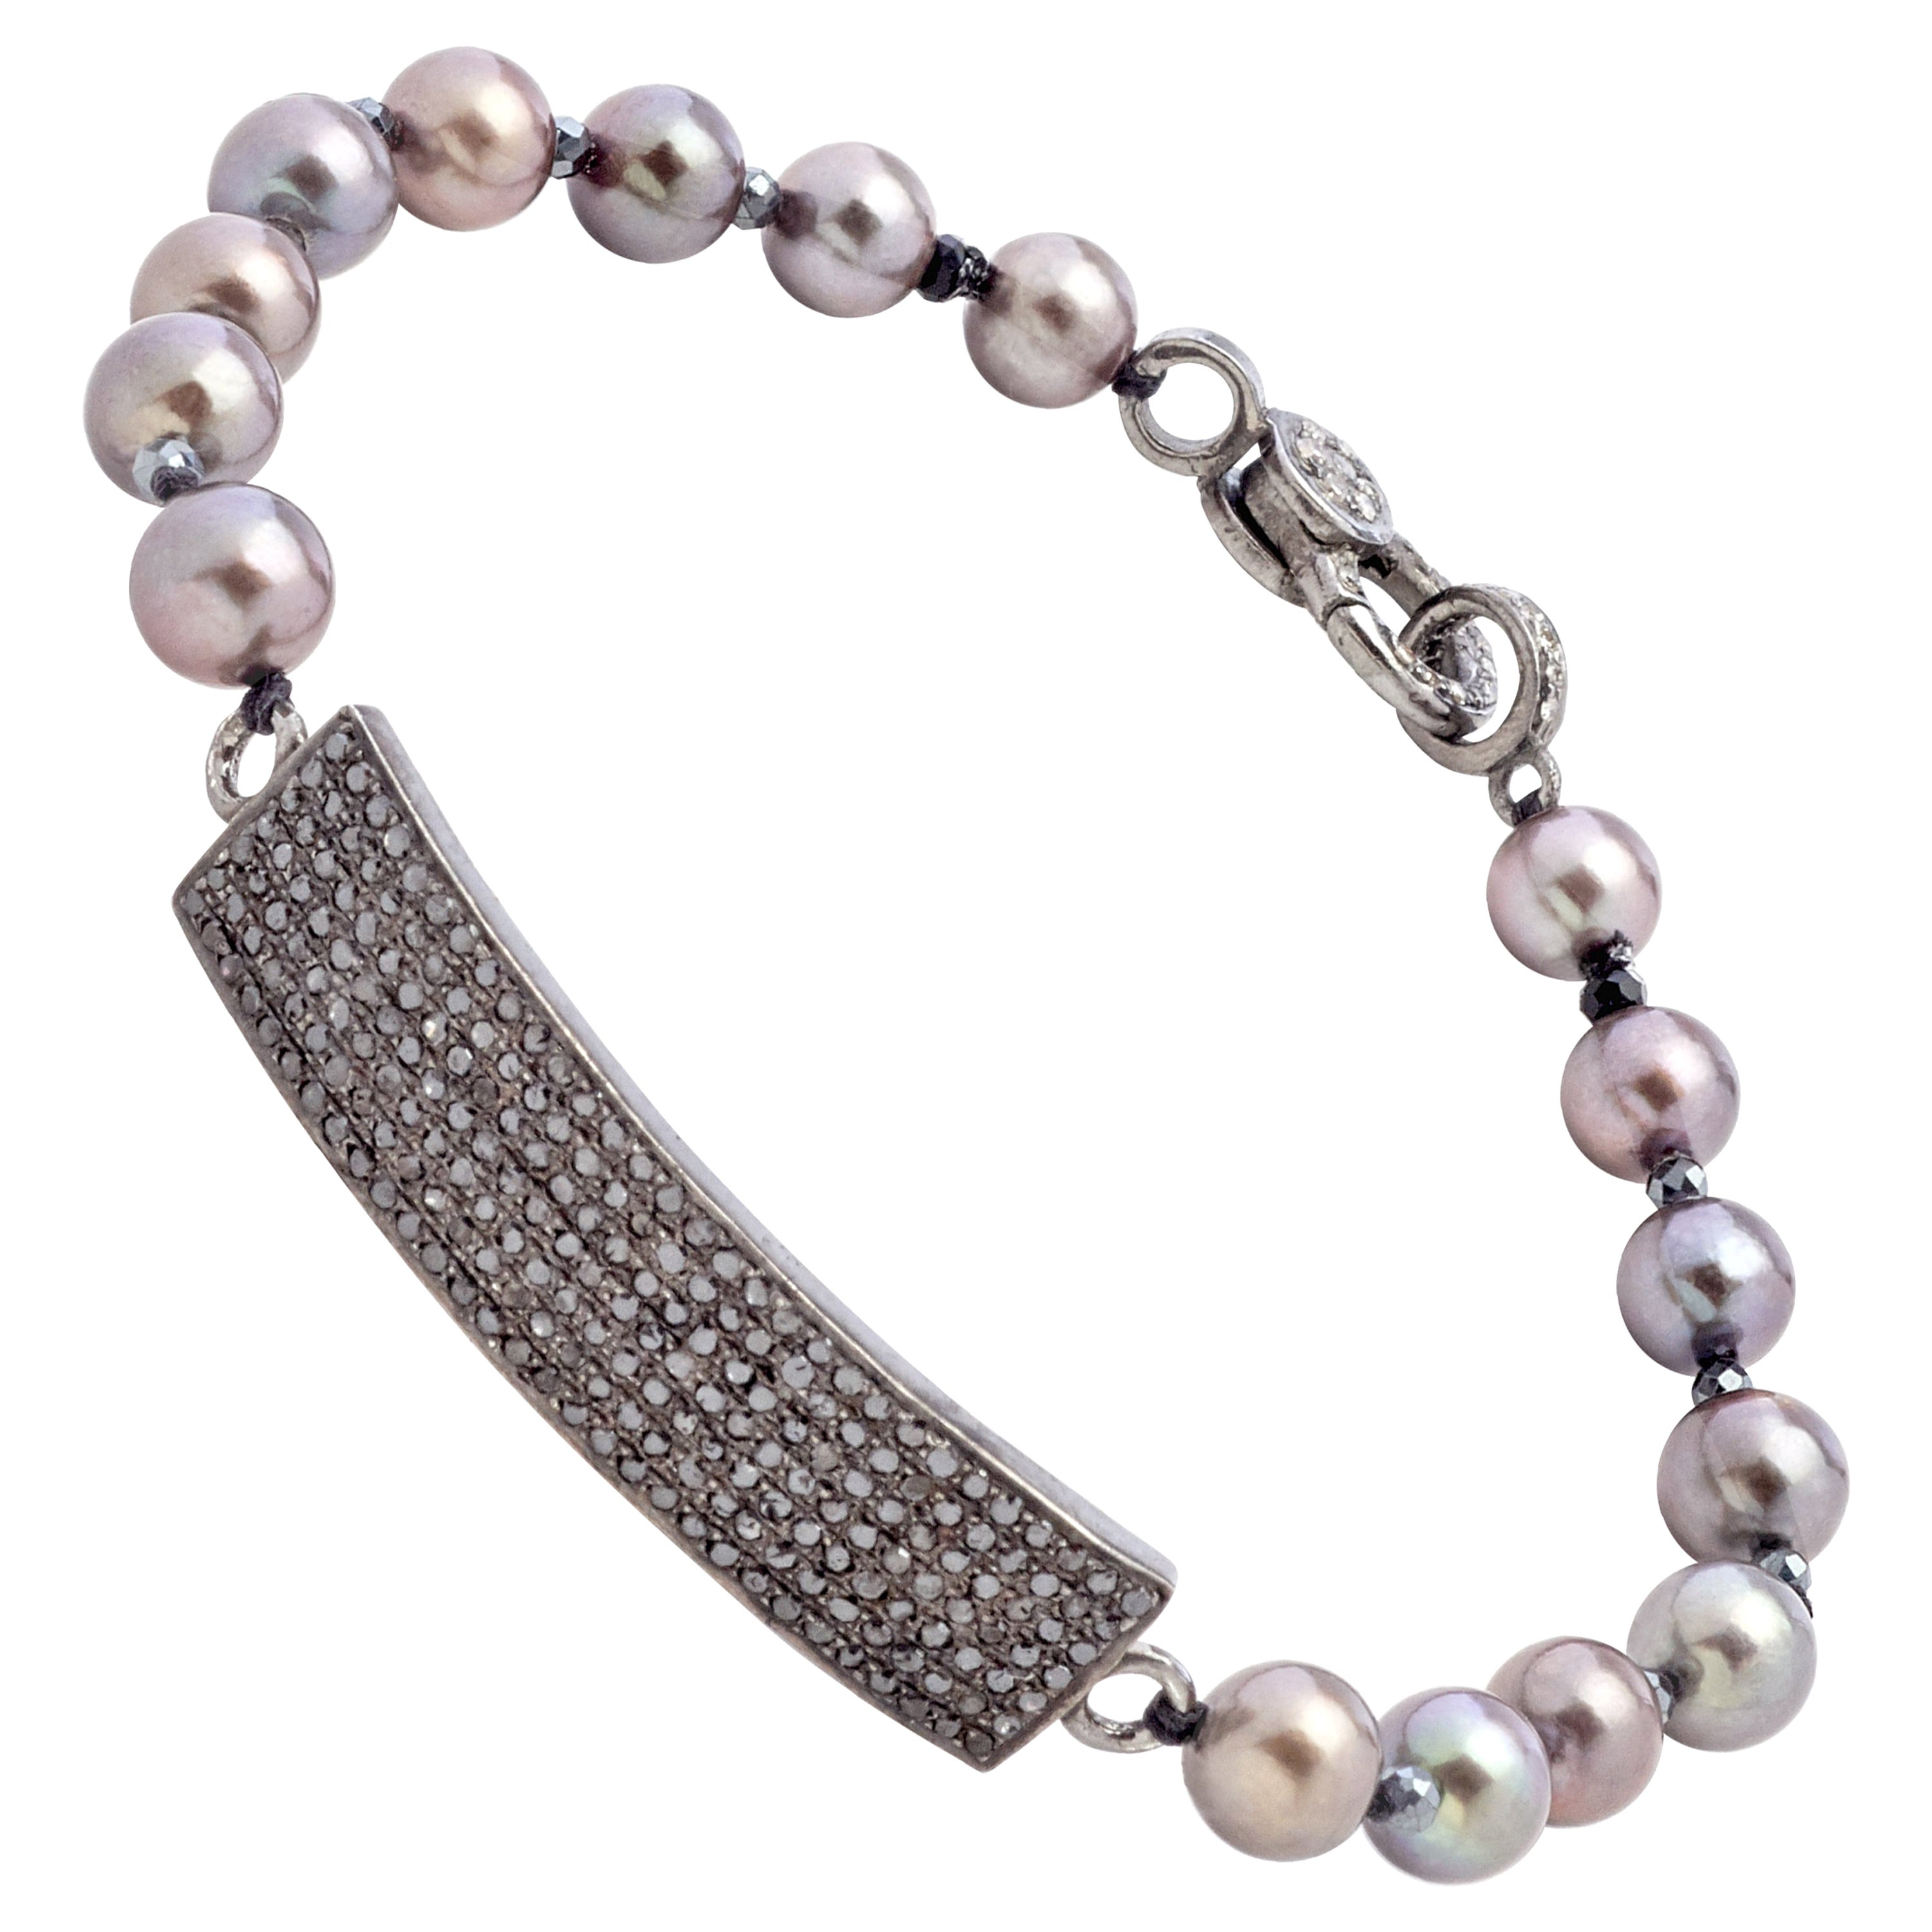 Black Diamond and Sterling Silver Bracelet with Gray Color Akoya Pearls